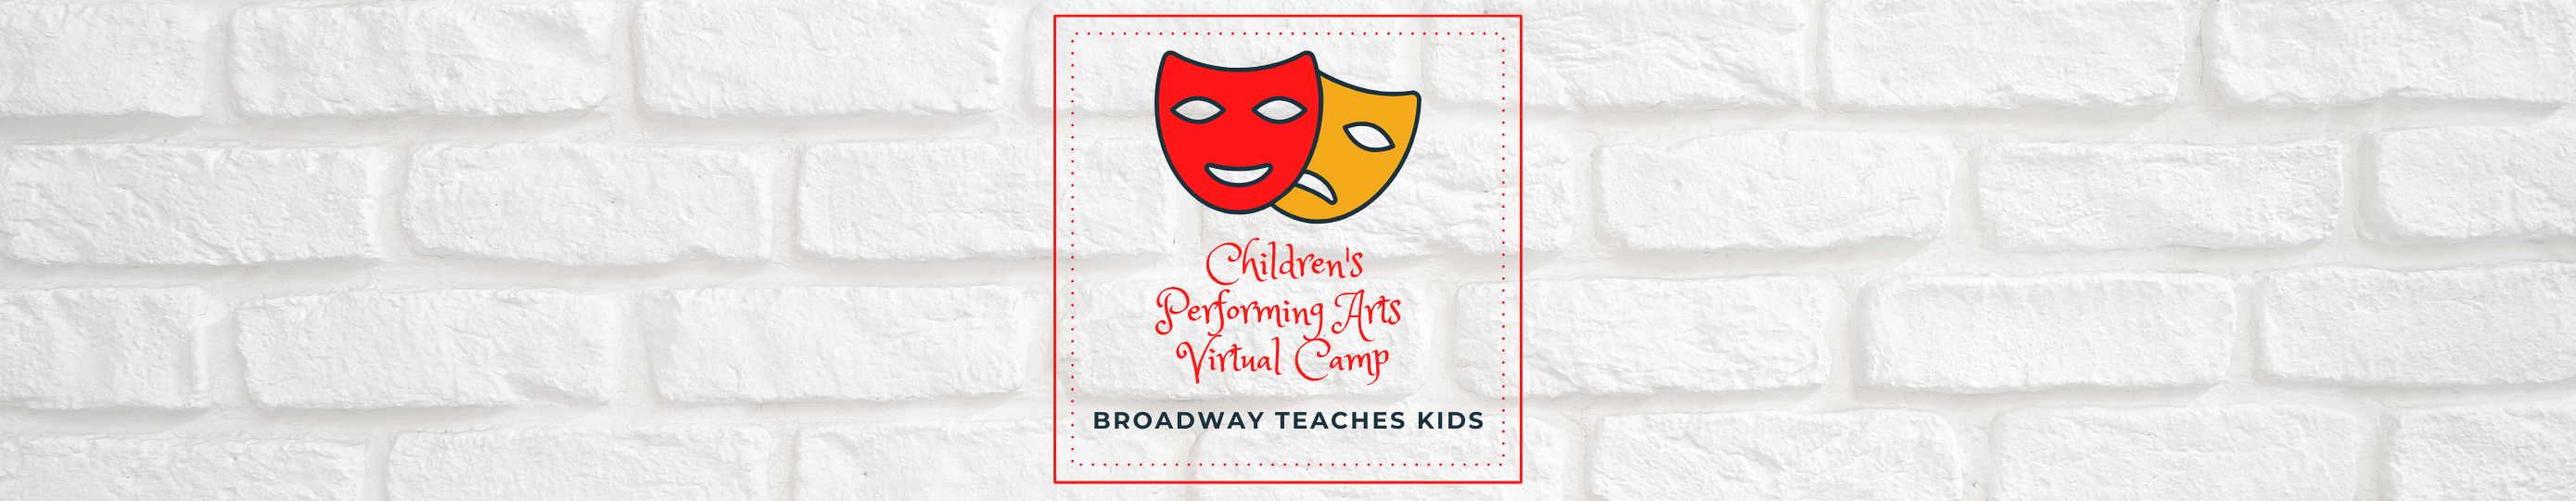 Broadway Teaches Kids 2020